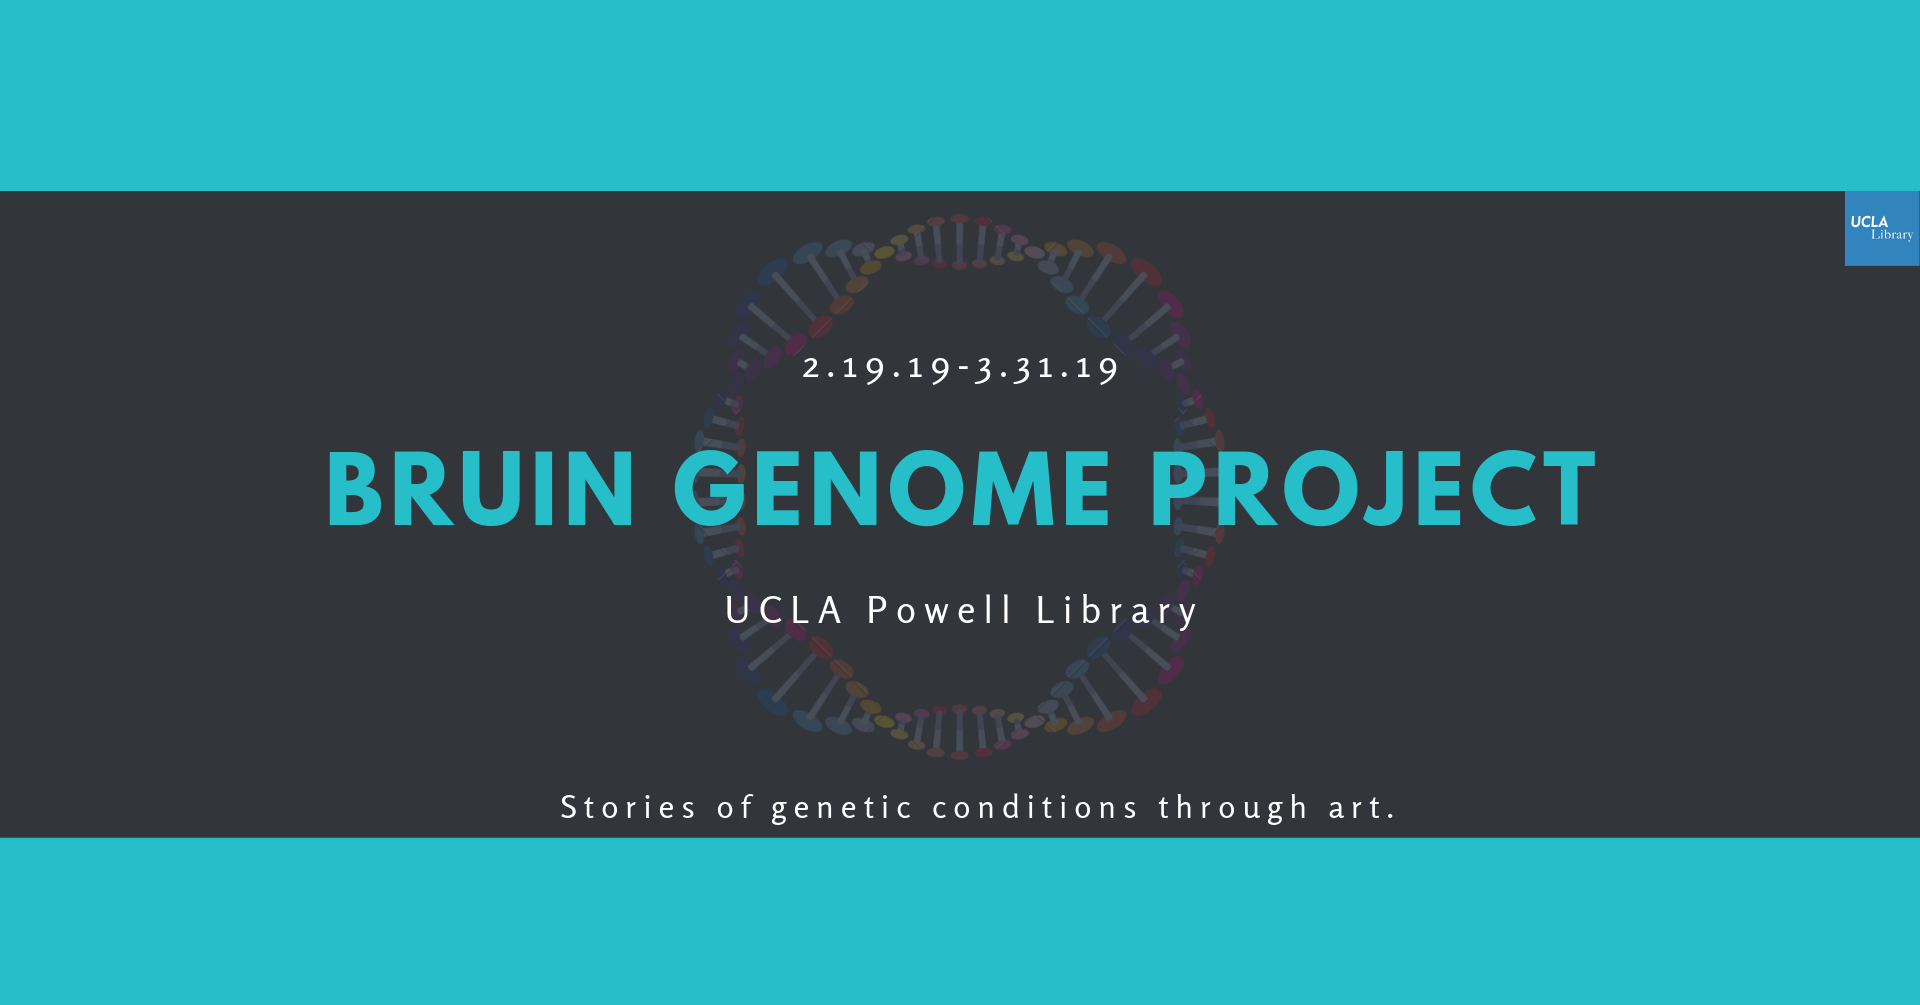 bruin genome project promotional poster